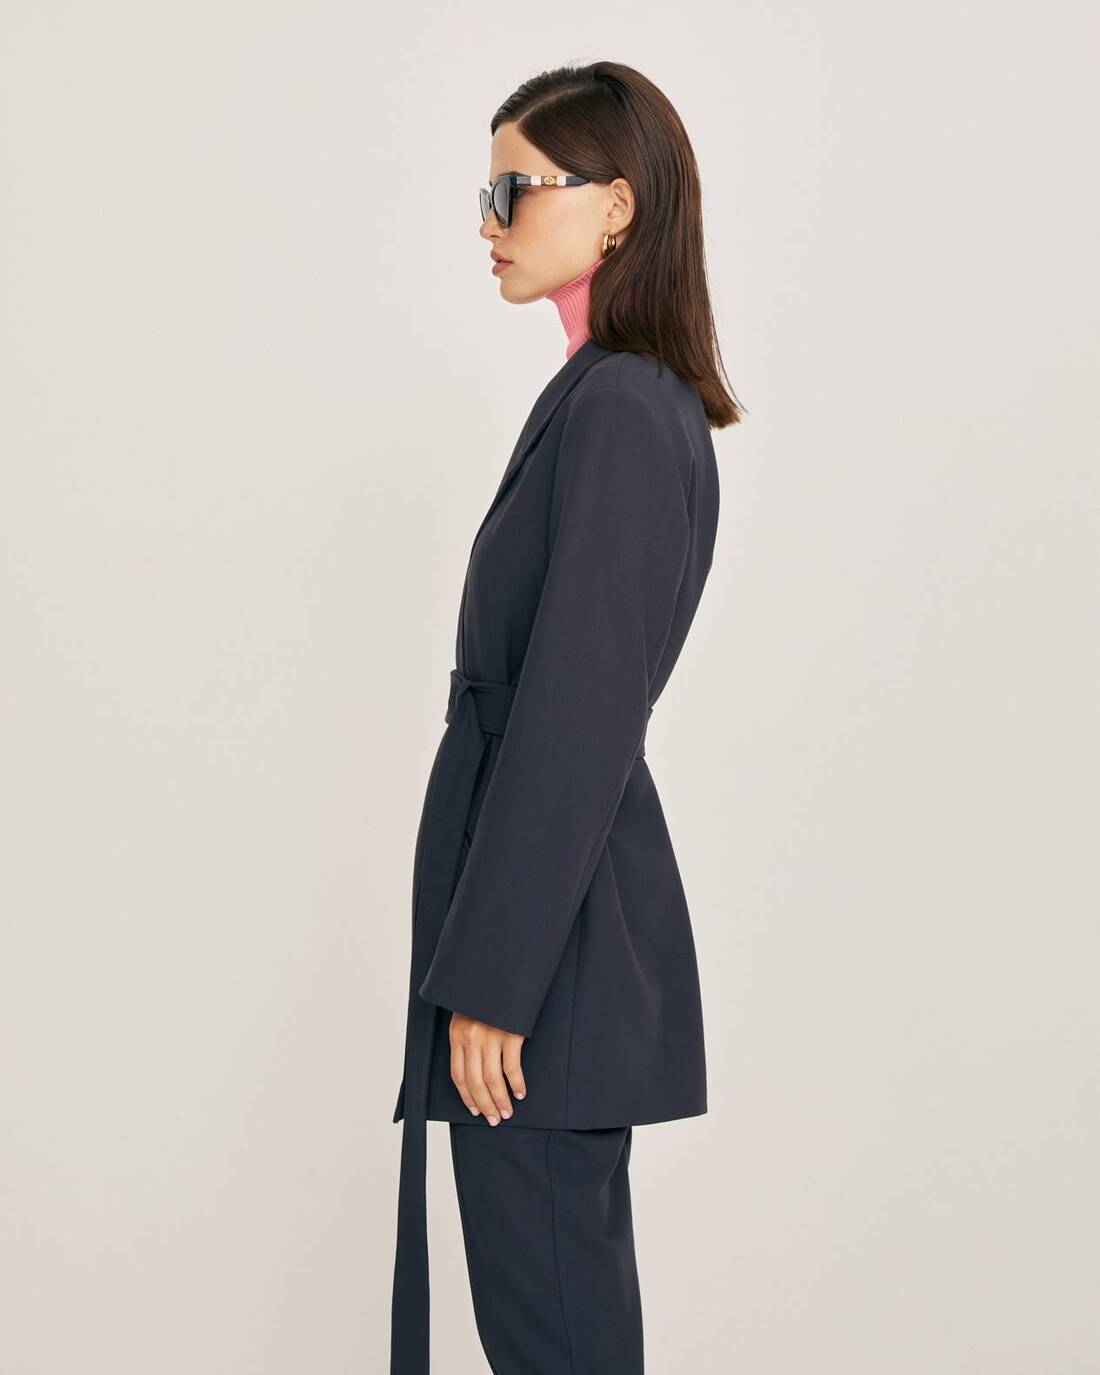 Elongated jacket with a belt